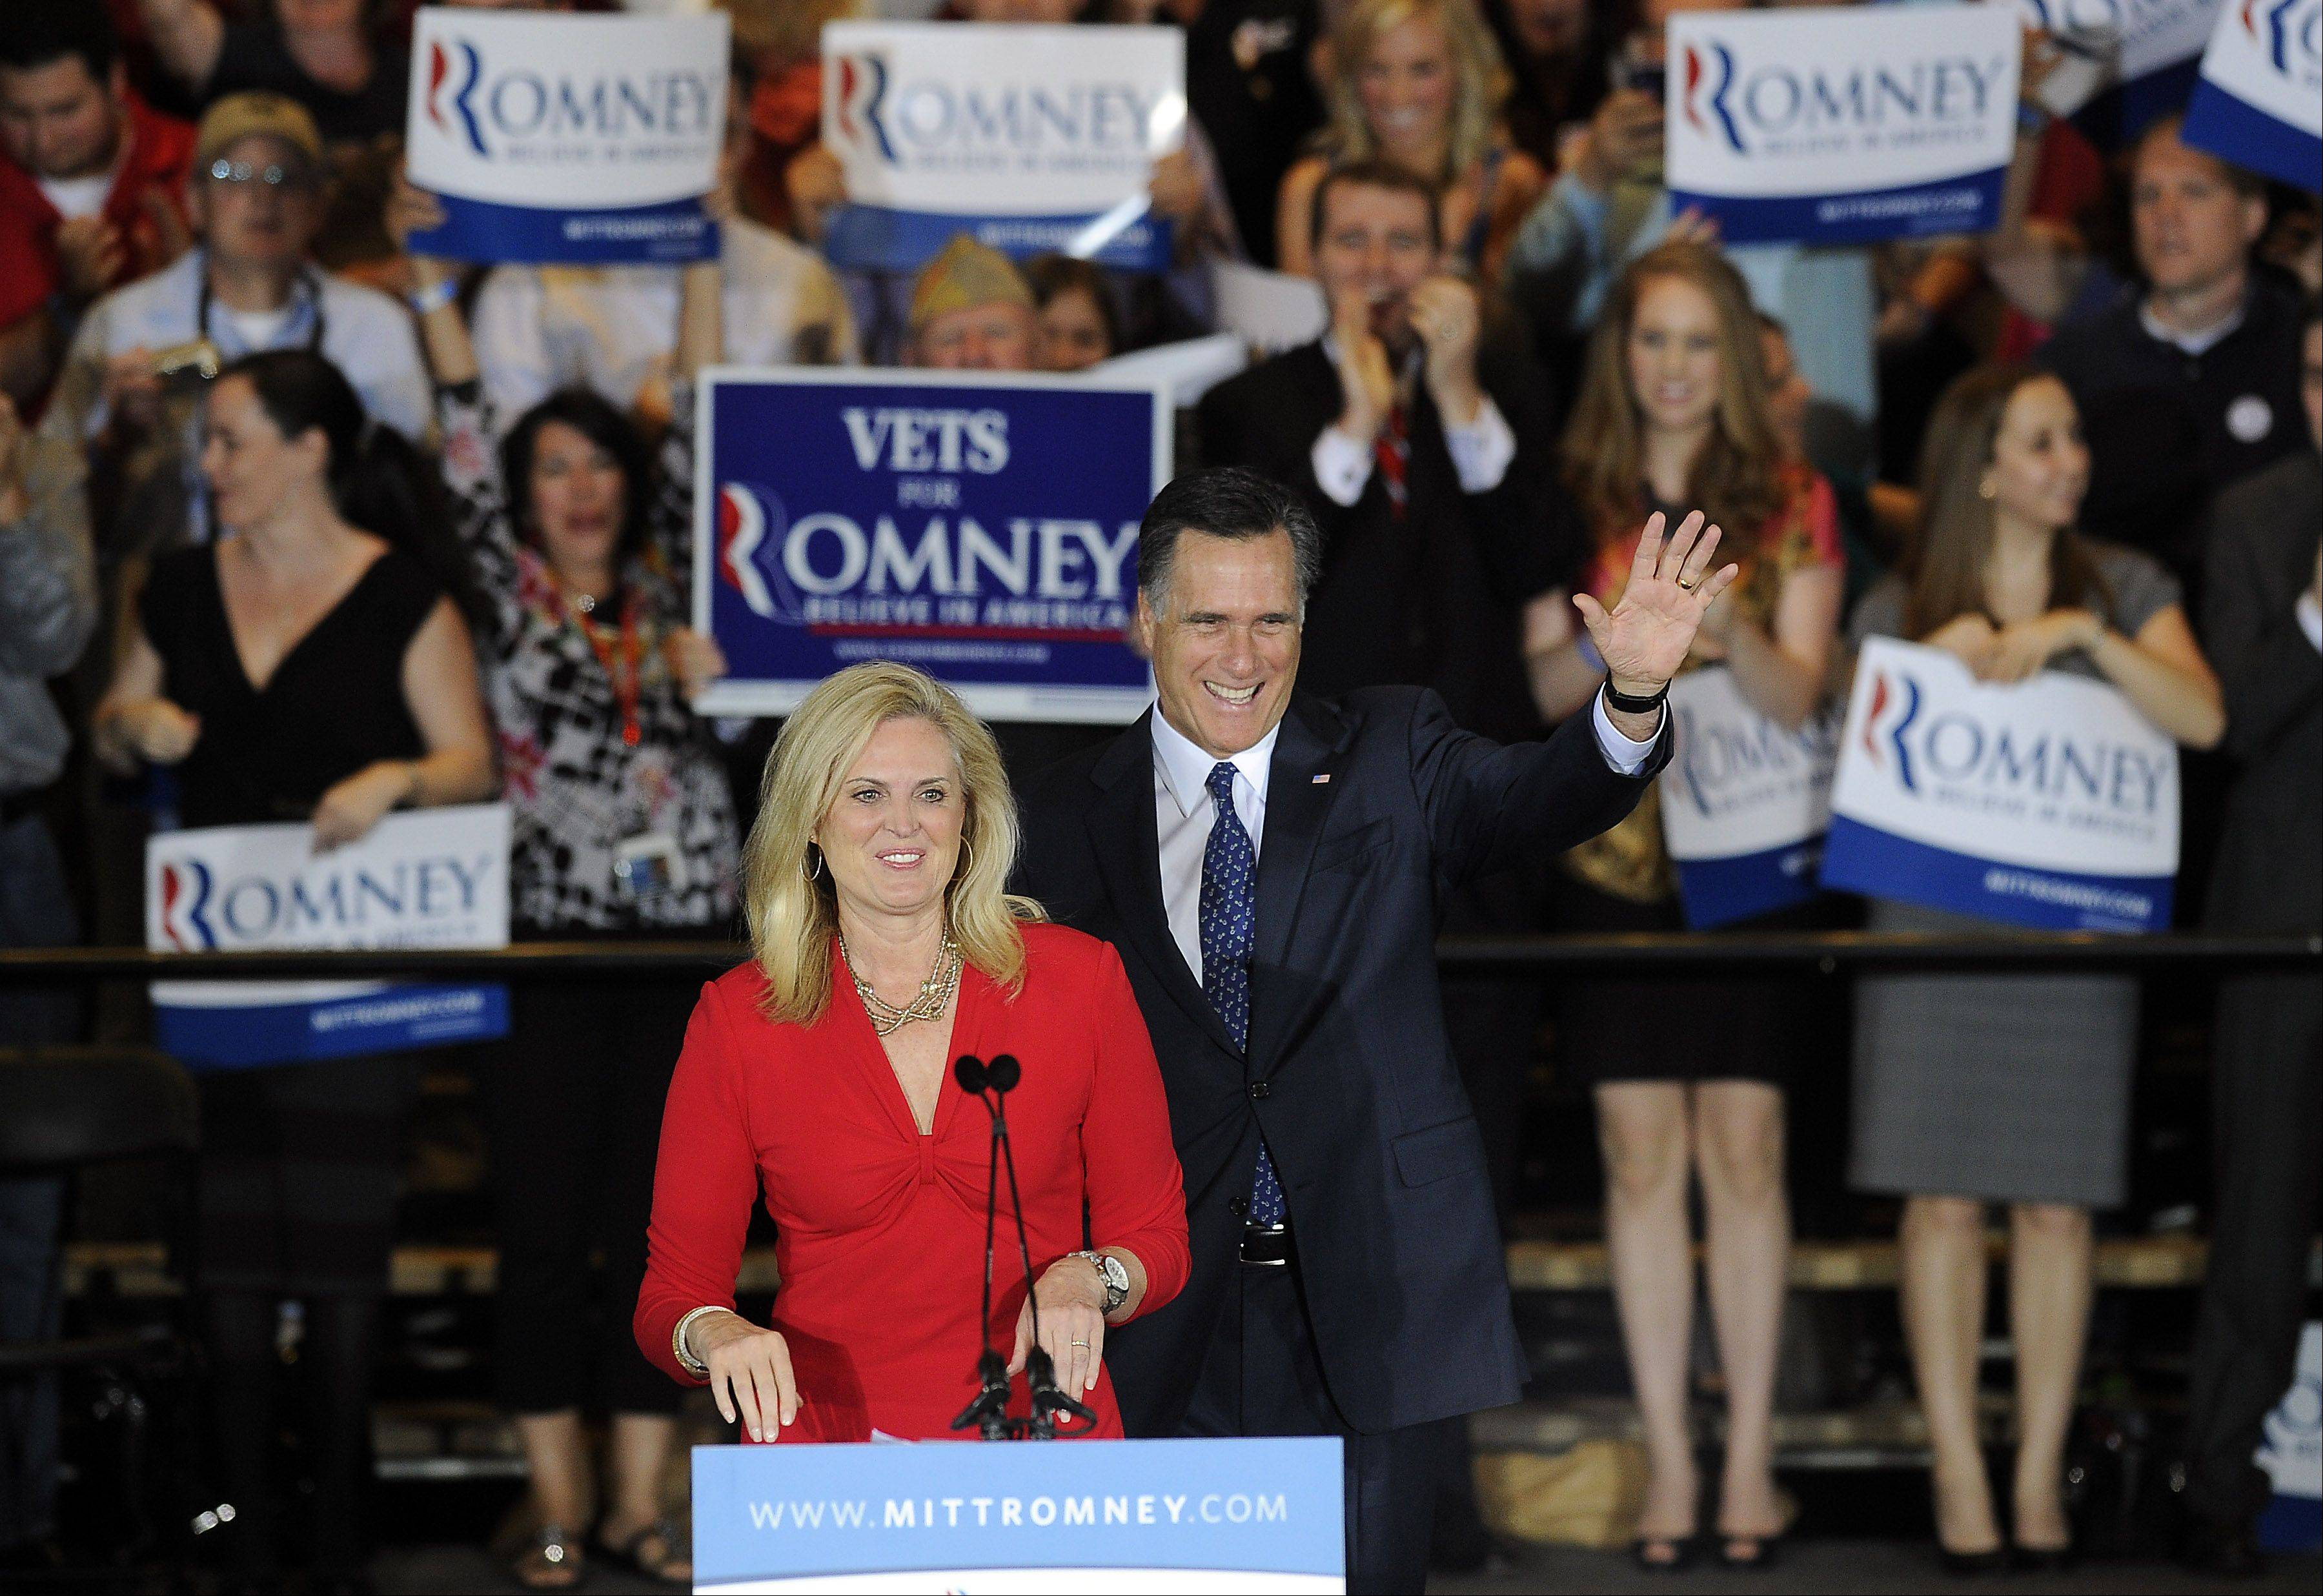 Illinois gives Romney big win